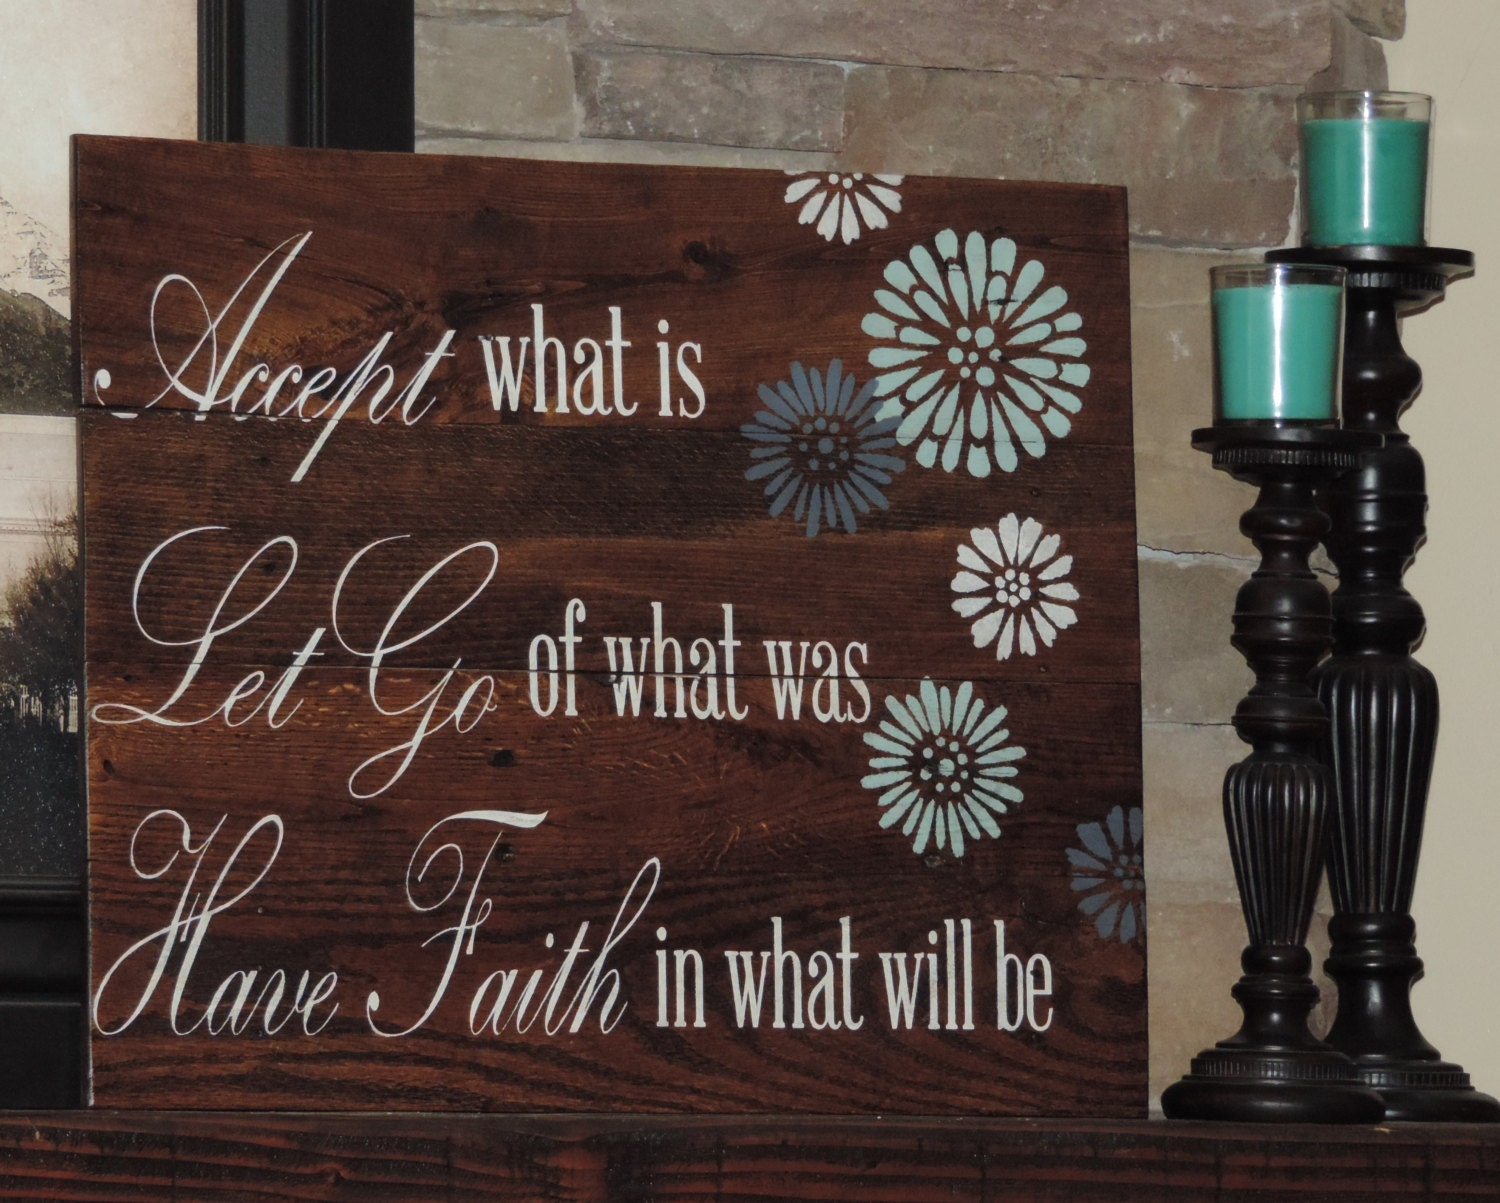 Wooden Wall Art Inspirational Quotes : Large reclaim wood sign with inspirational quote on pallet